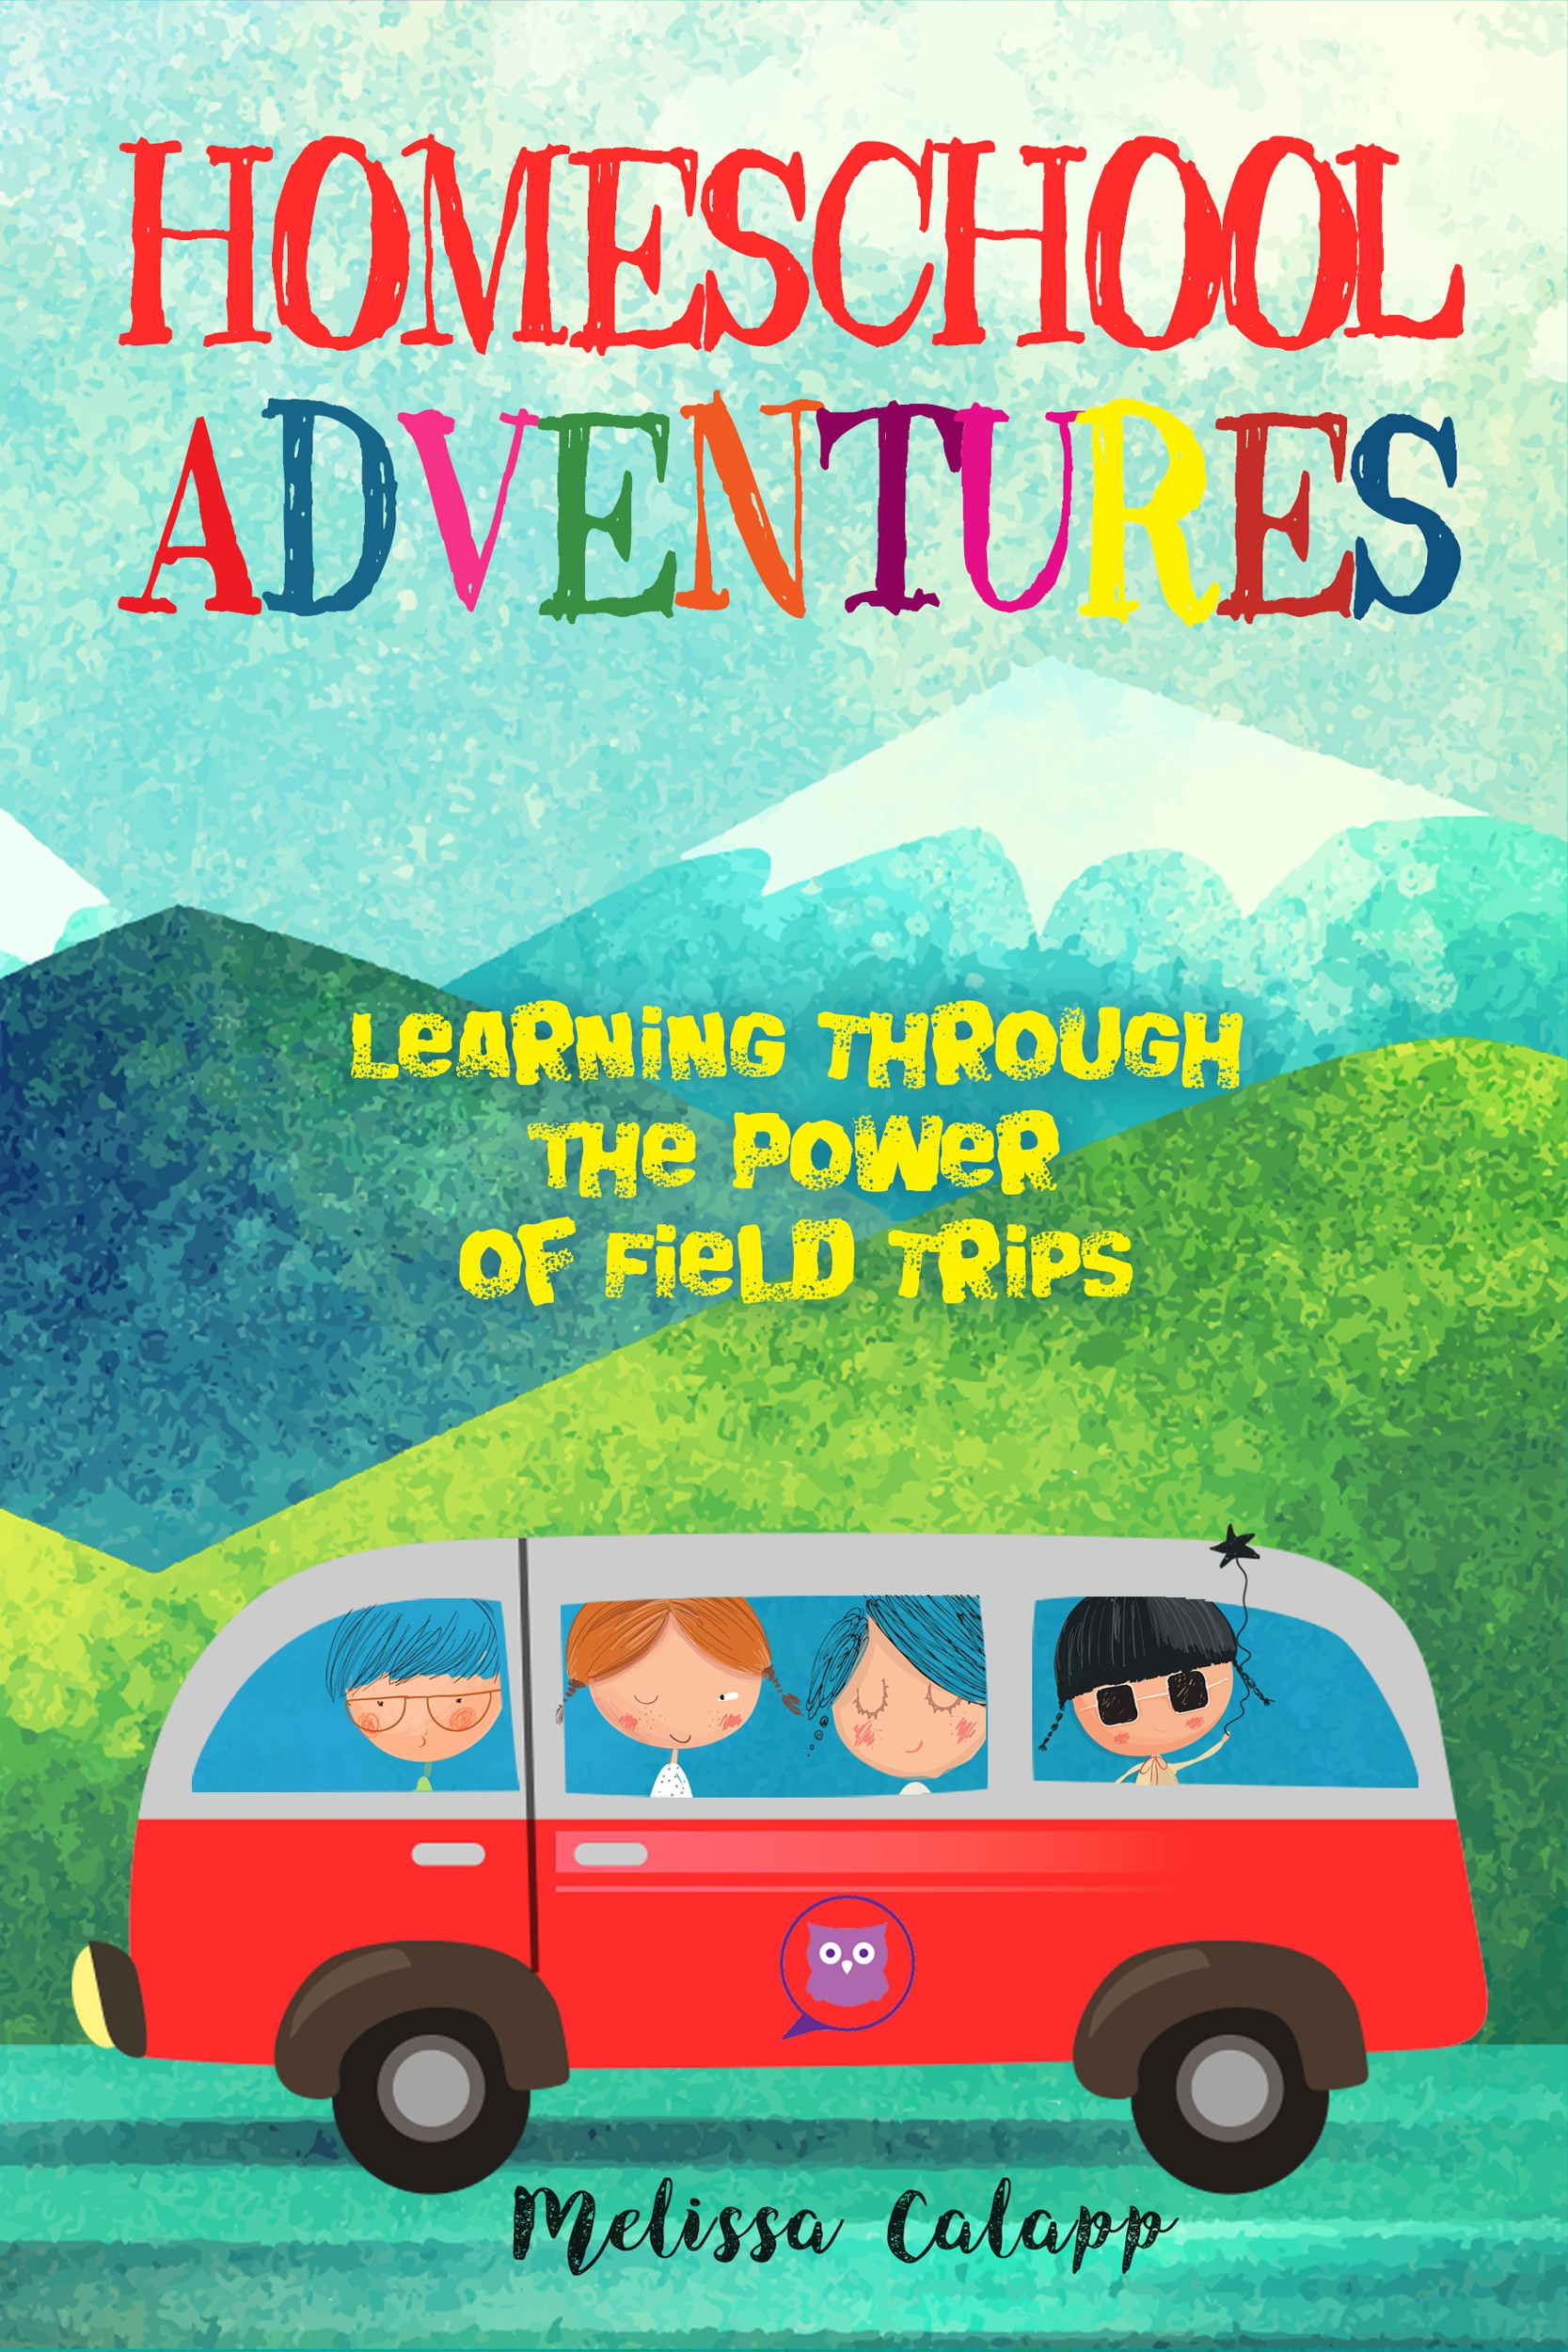 Design a book cover filled with adventures.